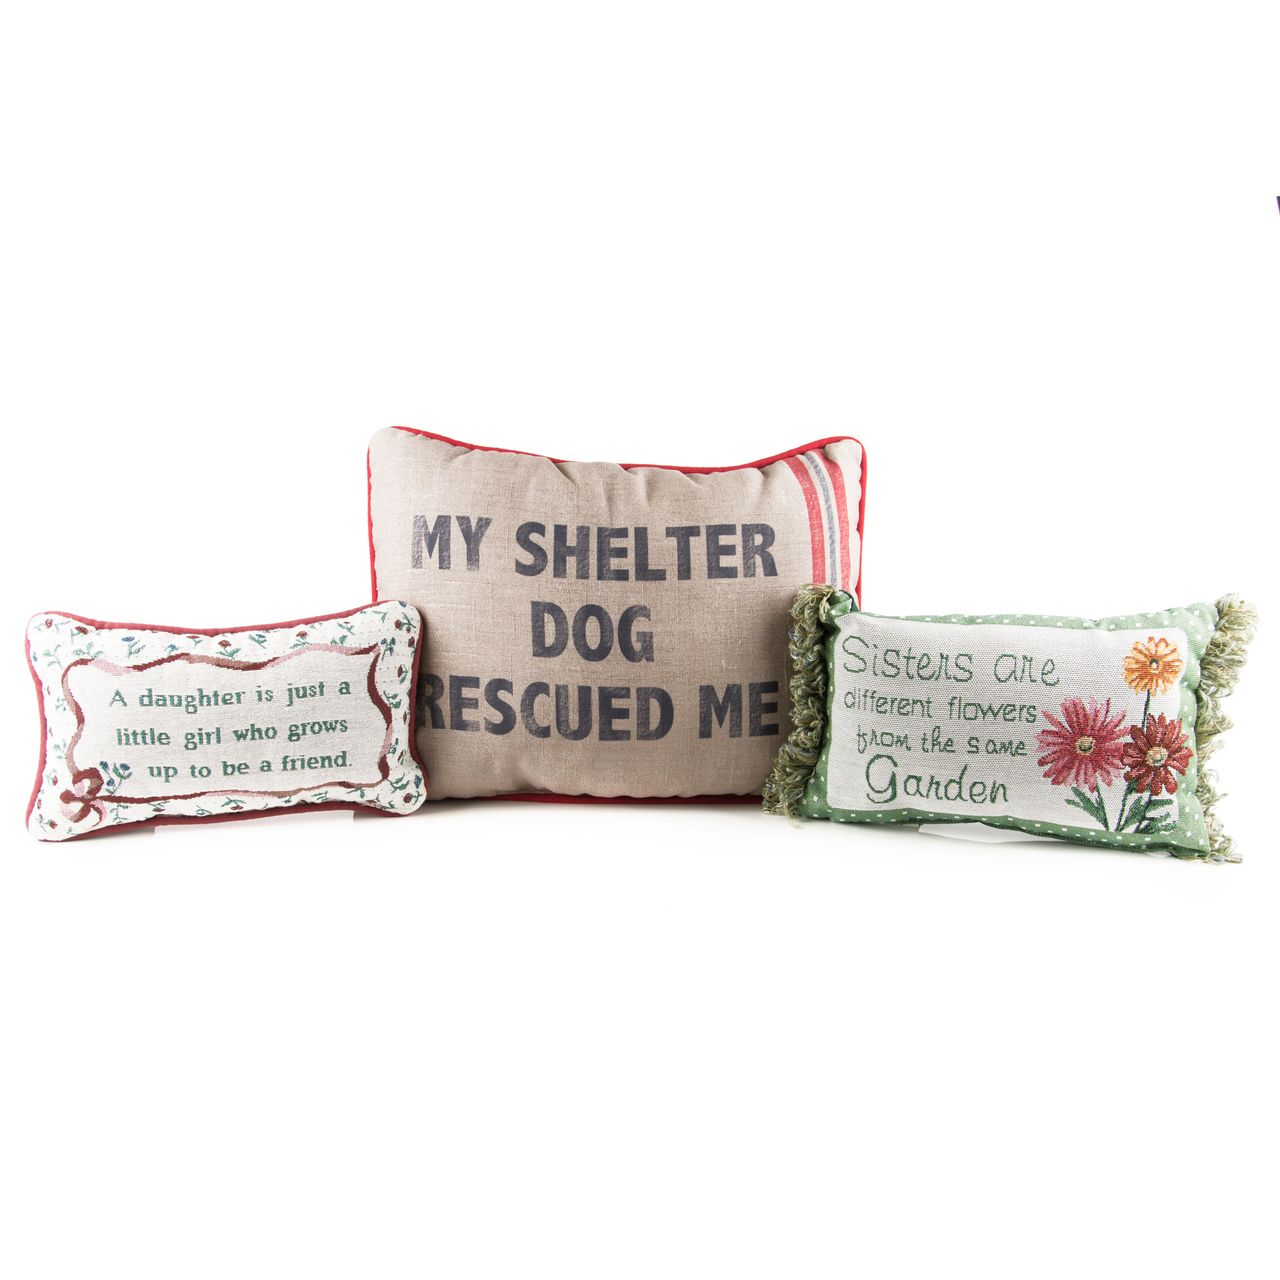 Superior Mix It With Your More Subdued Couch Pillows To Freshen Up Your Look And  Give Something